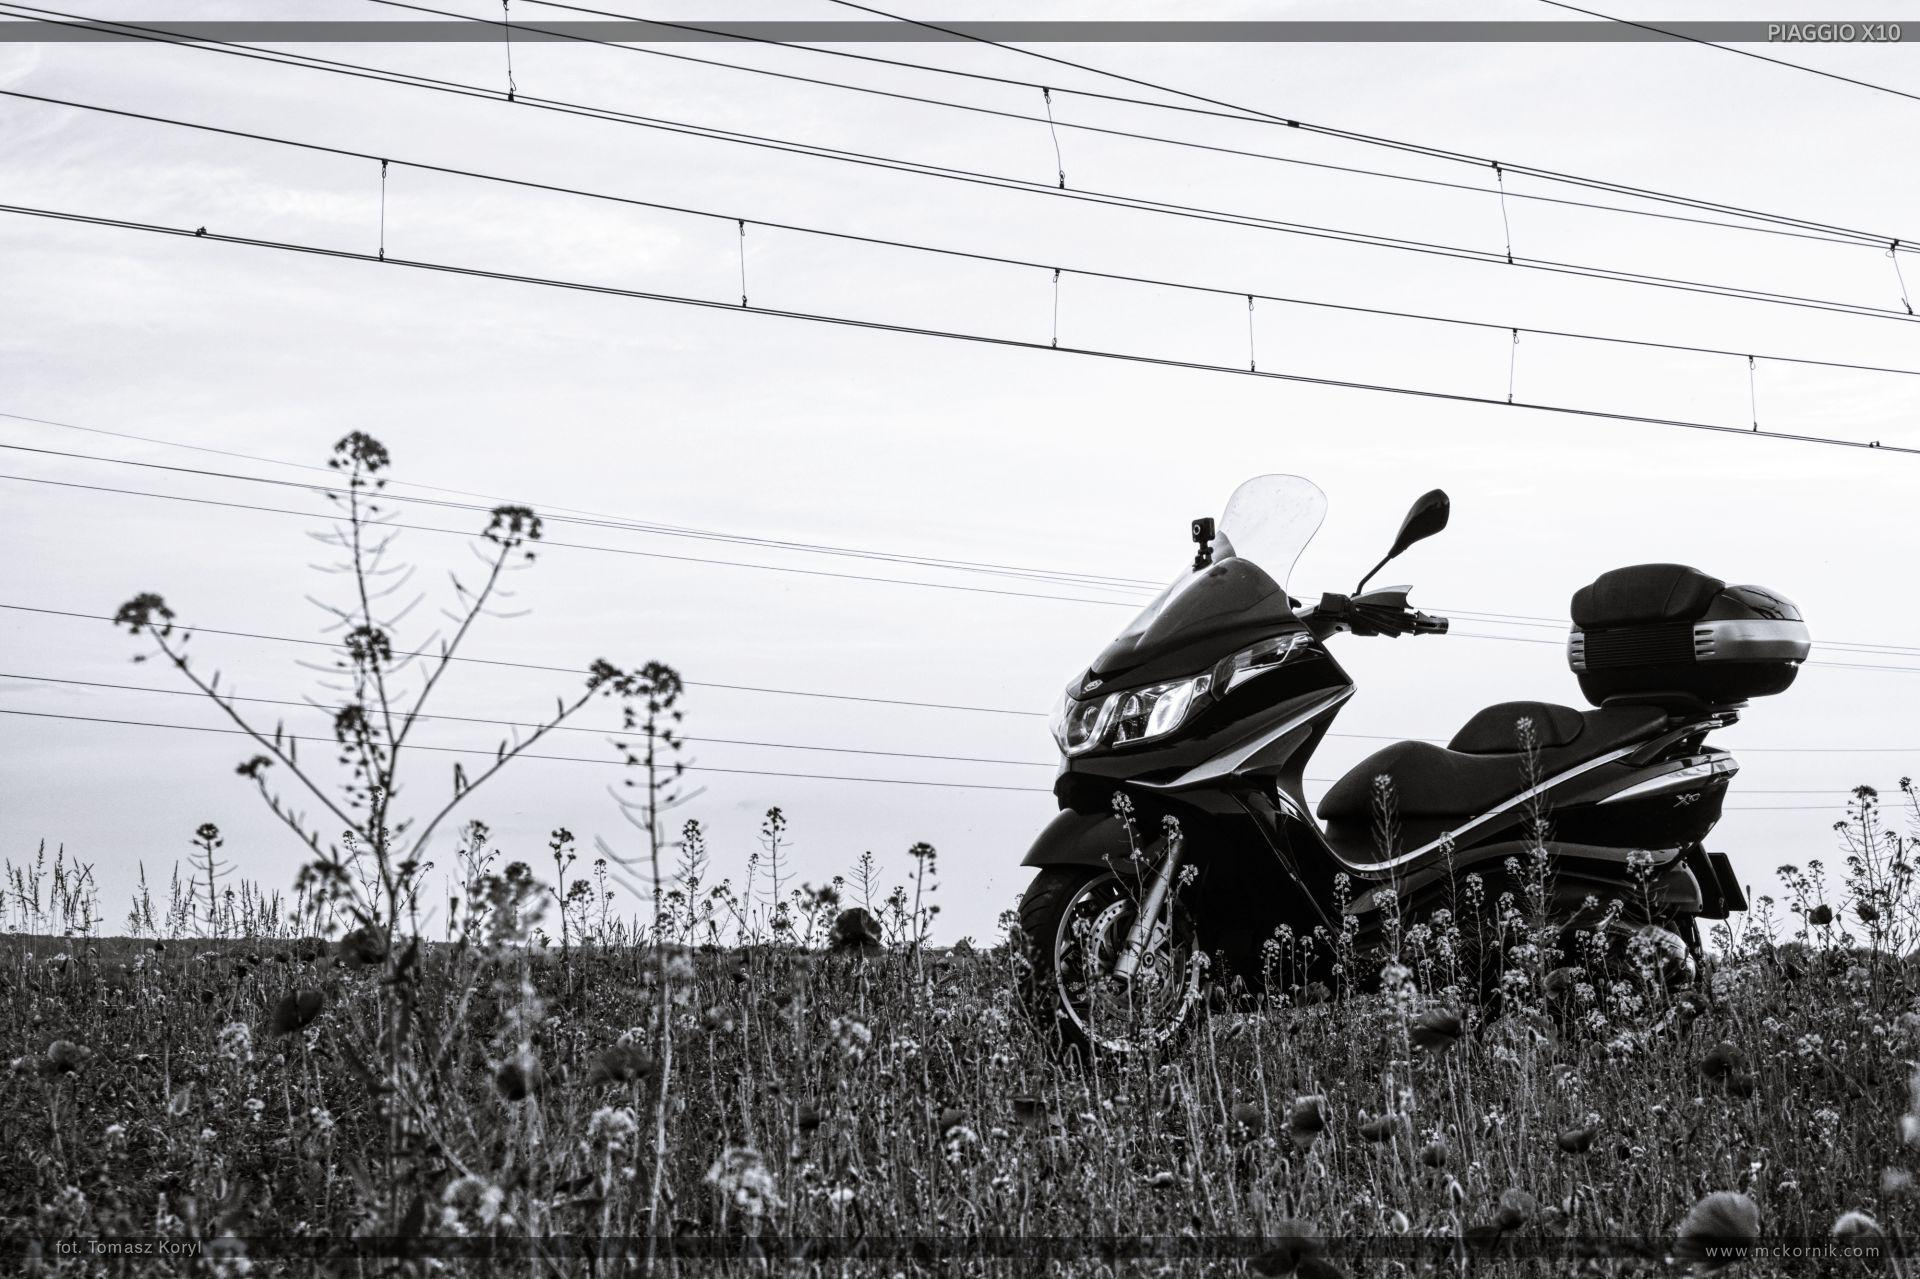 Black and white photo of maxi scooter piaggio x10 - mckornik.com - #scootertouring, #scooter, #scootertravel, #maxiscooter, #piaggio, #piaggioX10, #piaggio350